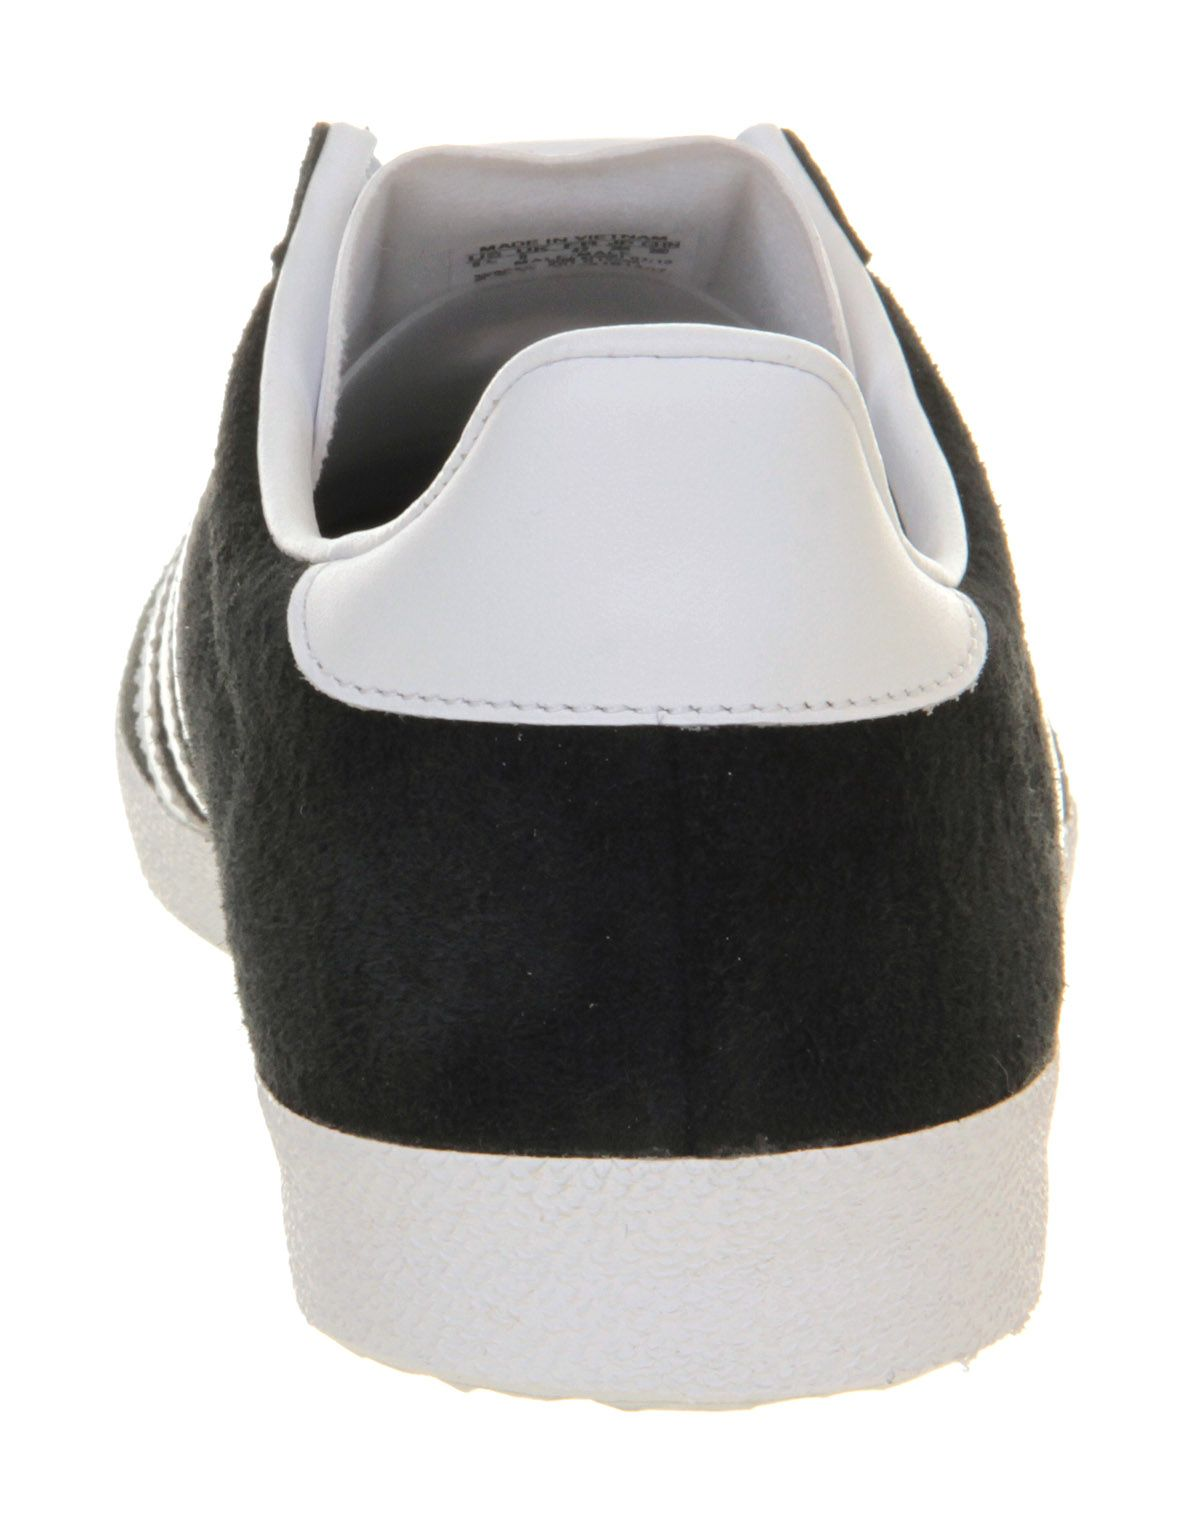 Adidas Gazelle Sleek Womens Trainers